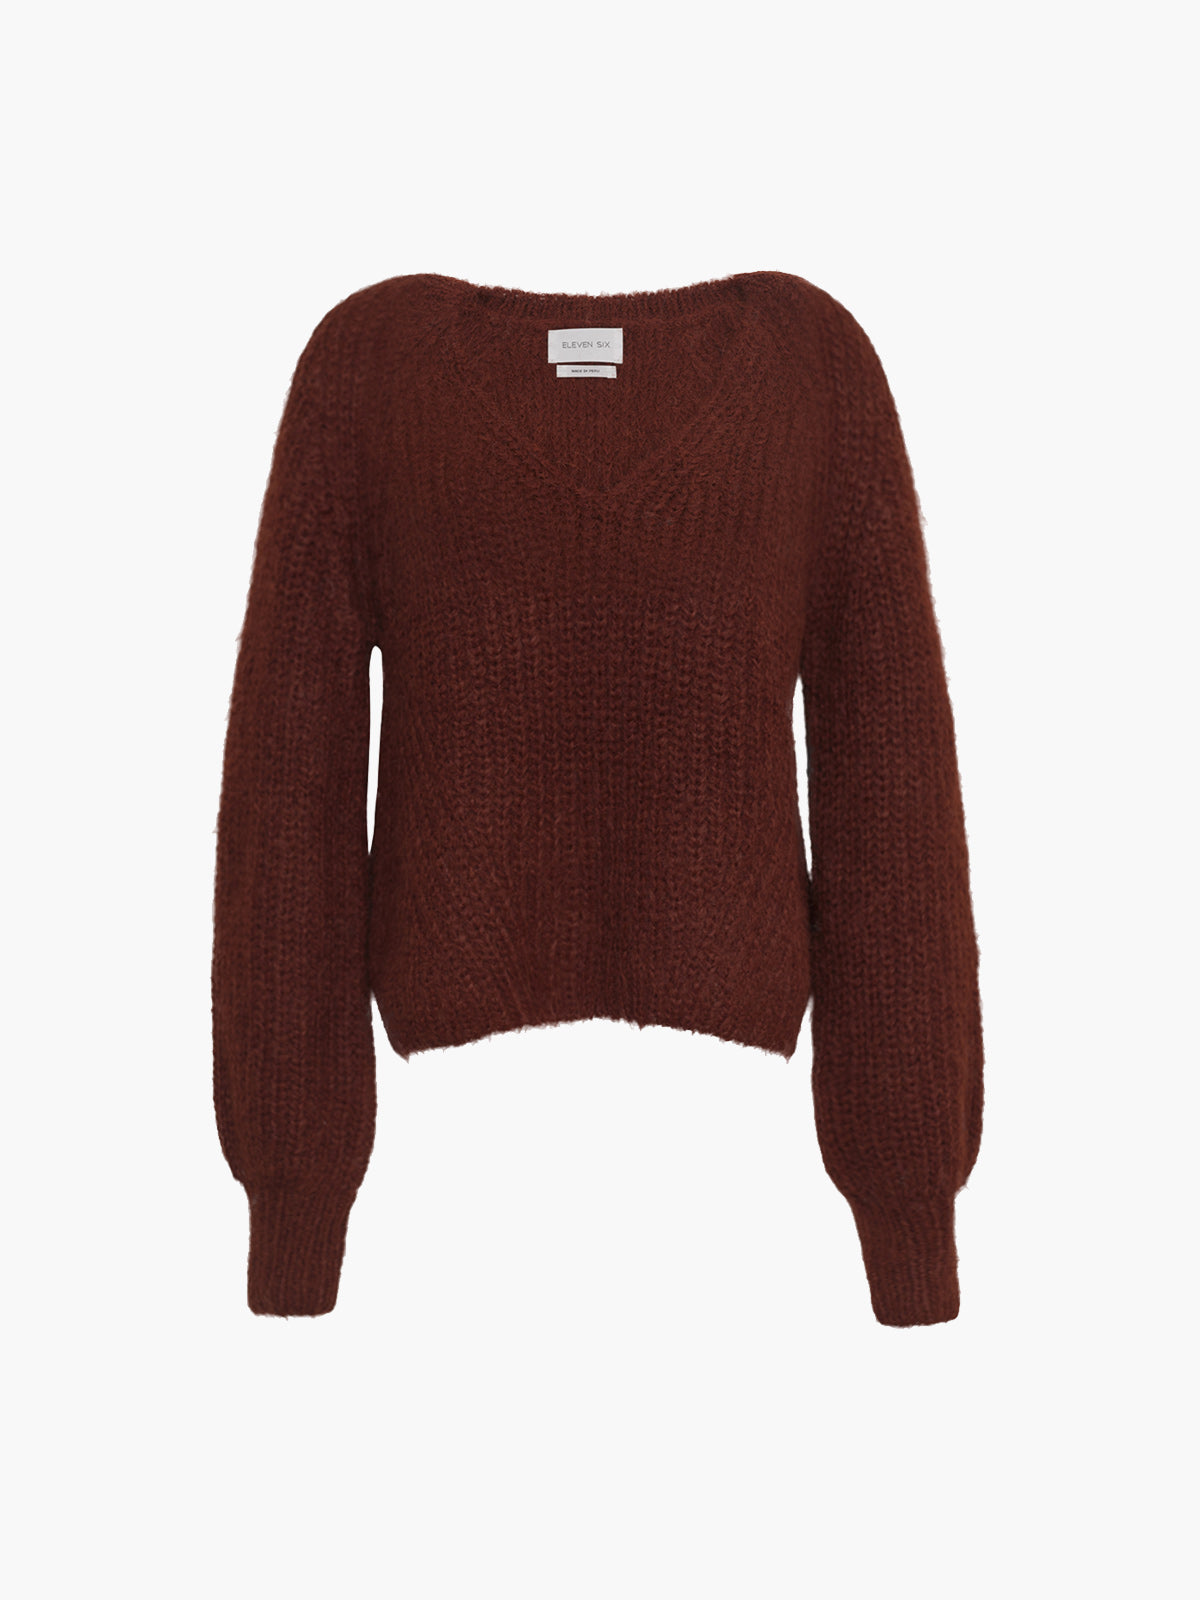 Tess Sweater | Cocoa Tess Sweater | Cocoa